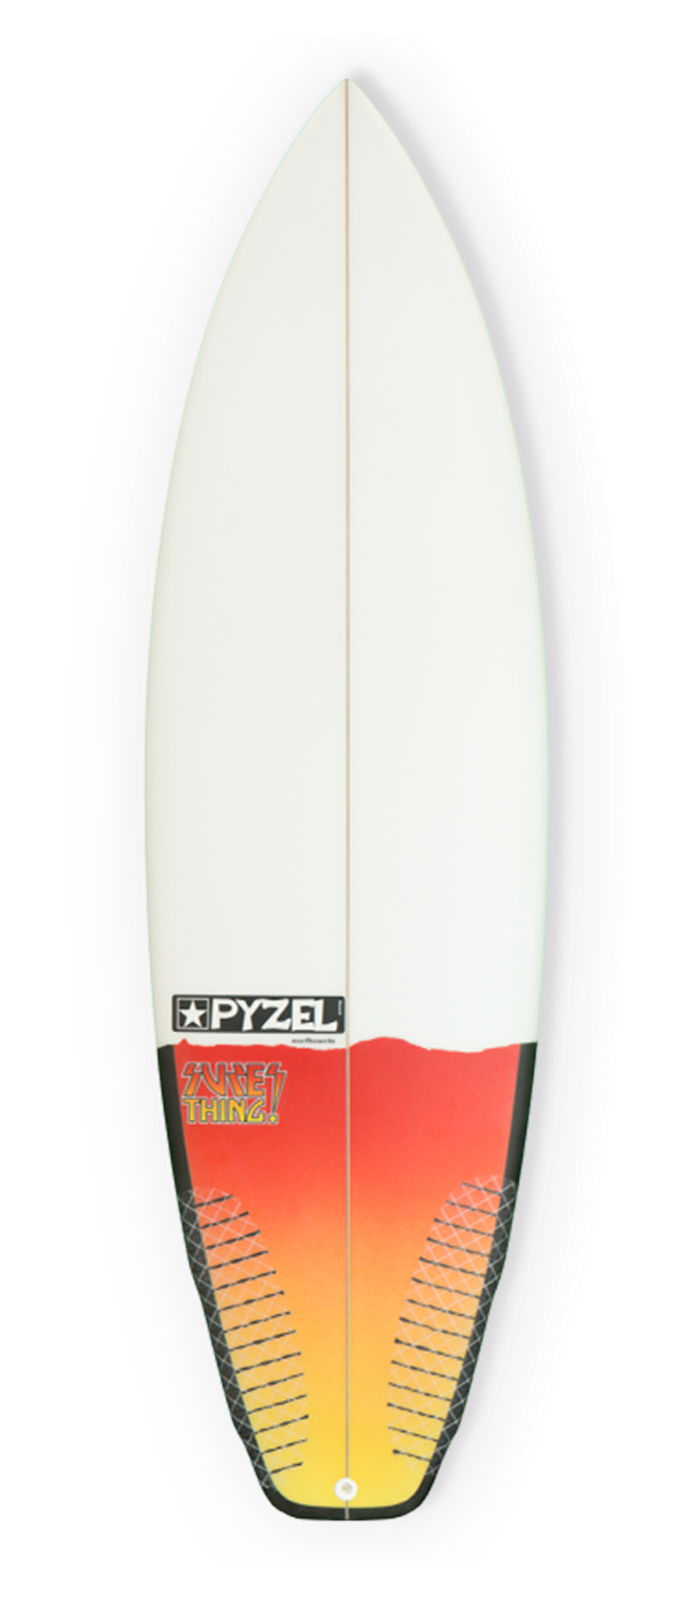 SURE THING surfboard model